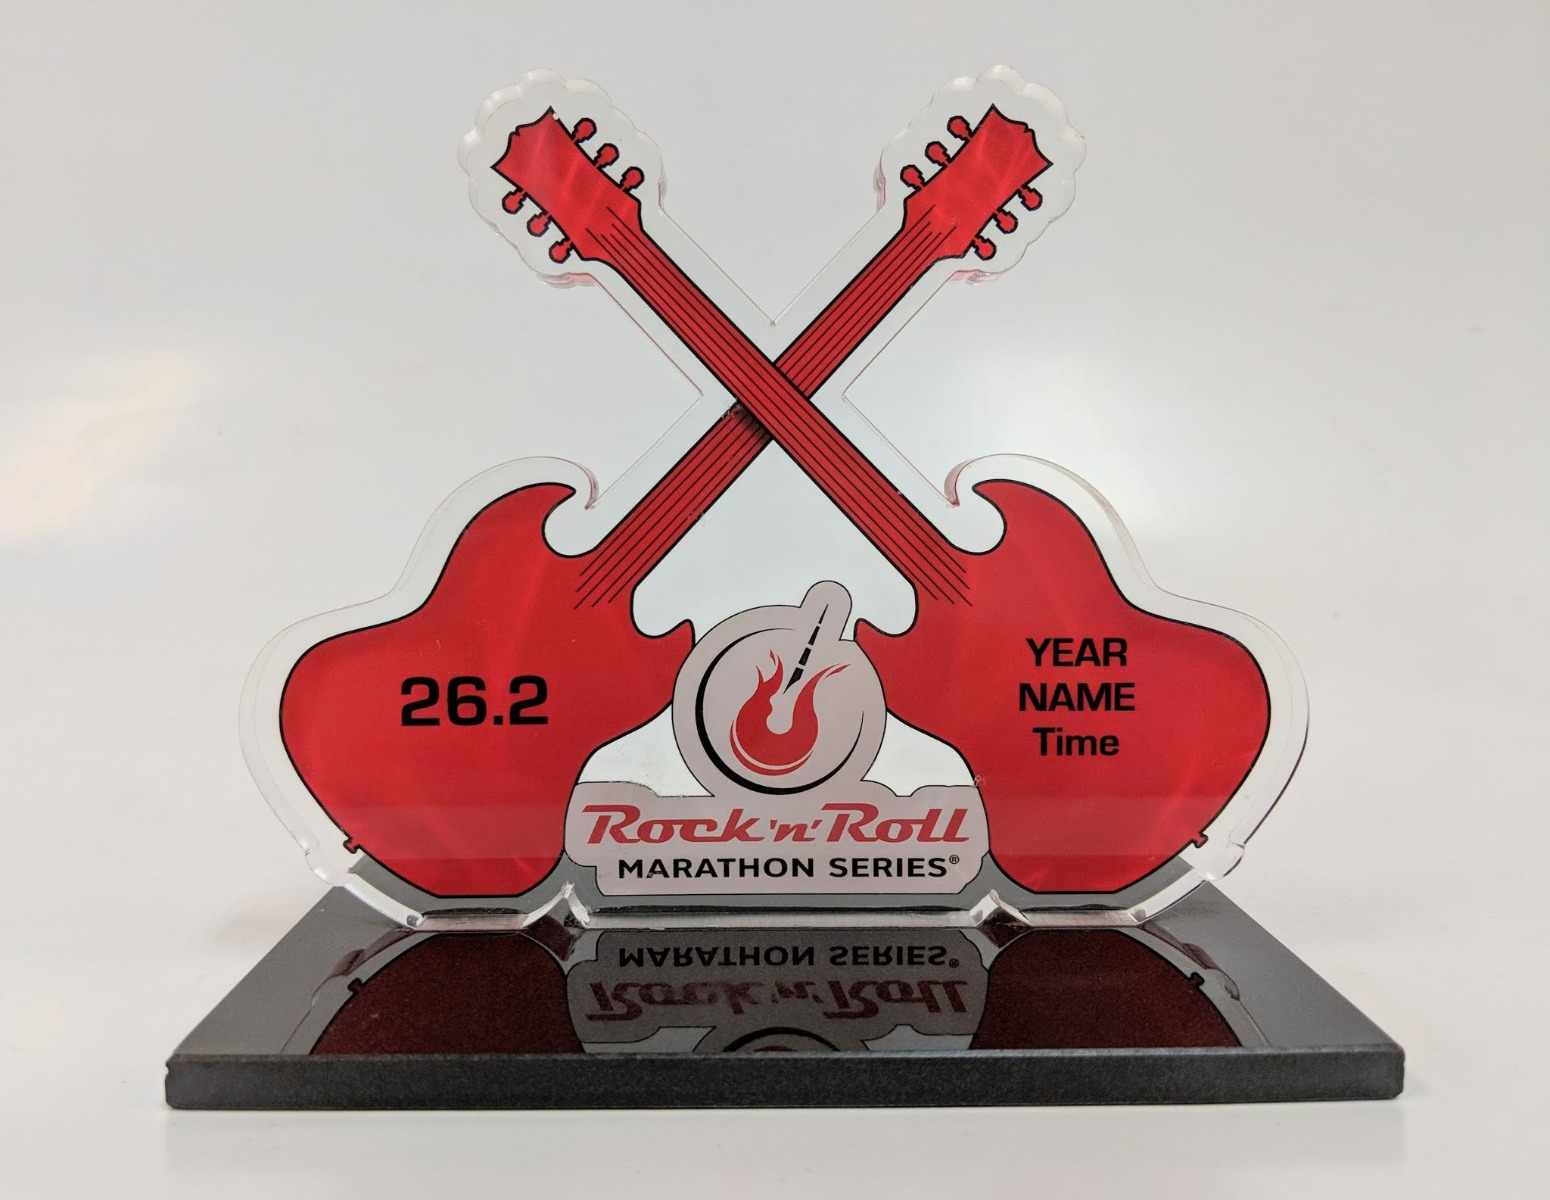 Rock 'n' Roll Marathon Series Finisher Trophy